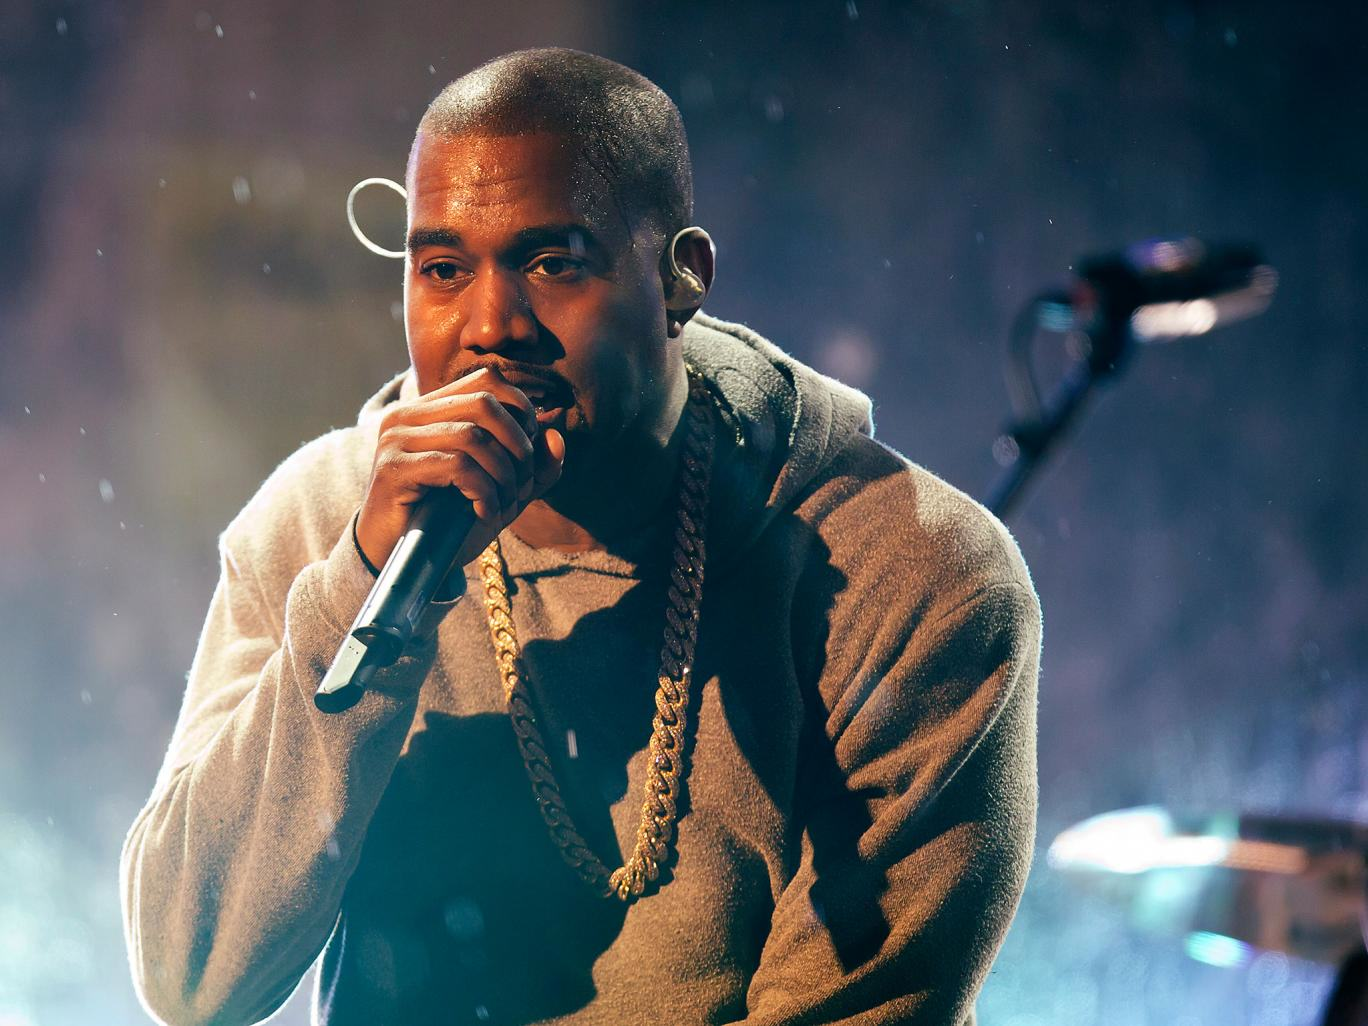 If You Break This Golden Rule Youll Never Work With Kanye West Kanye reuters 2